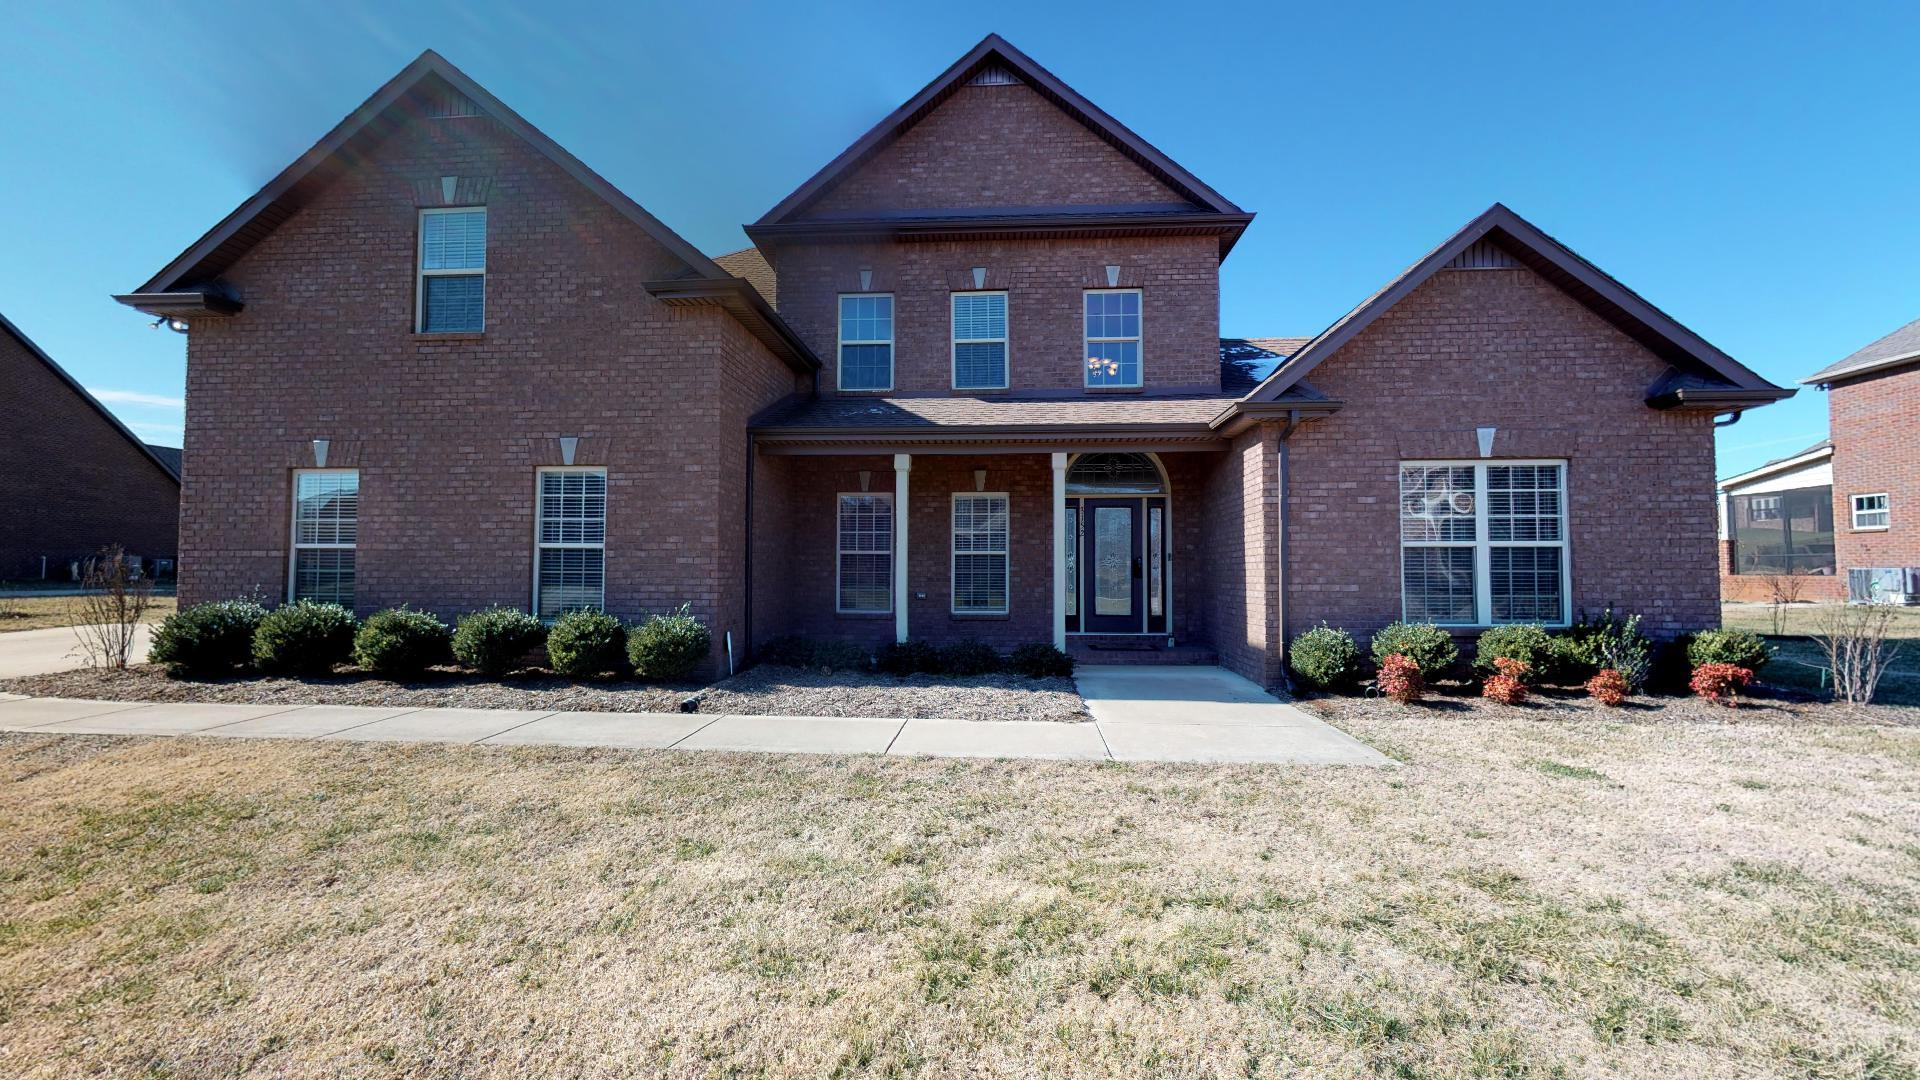 3152 Carrie Taylor Cir, Fort Campbell, Tennessee